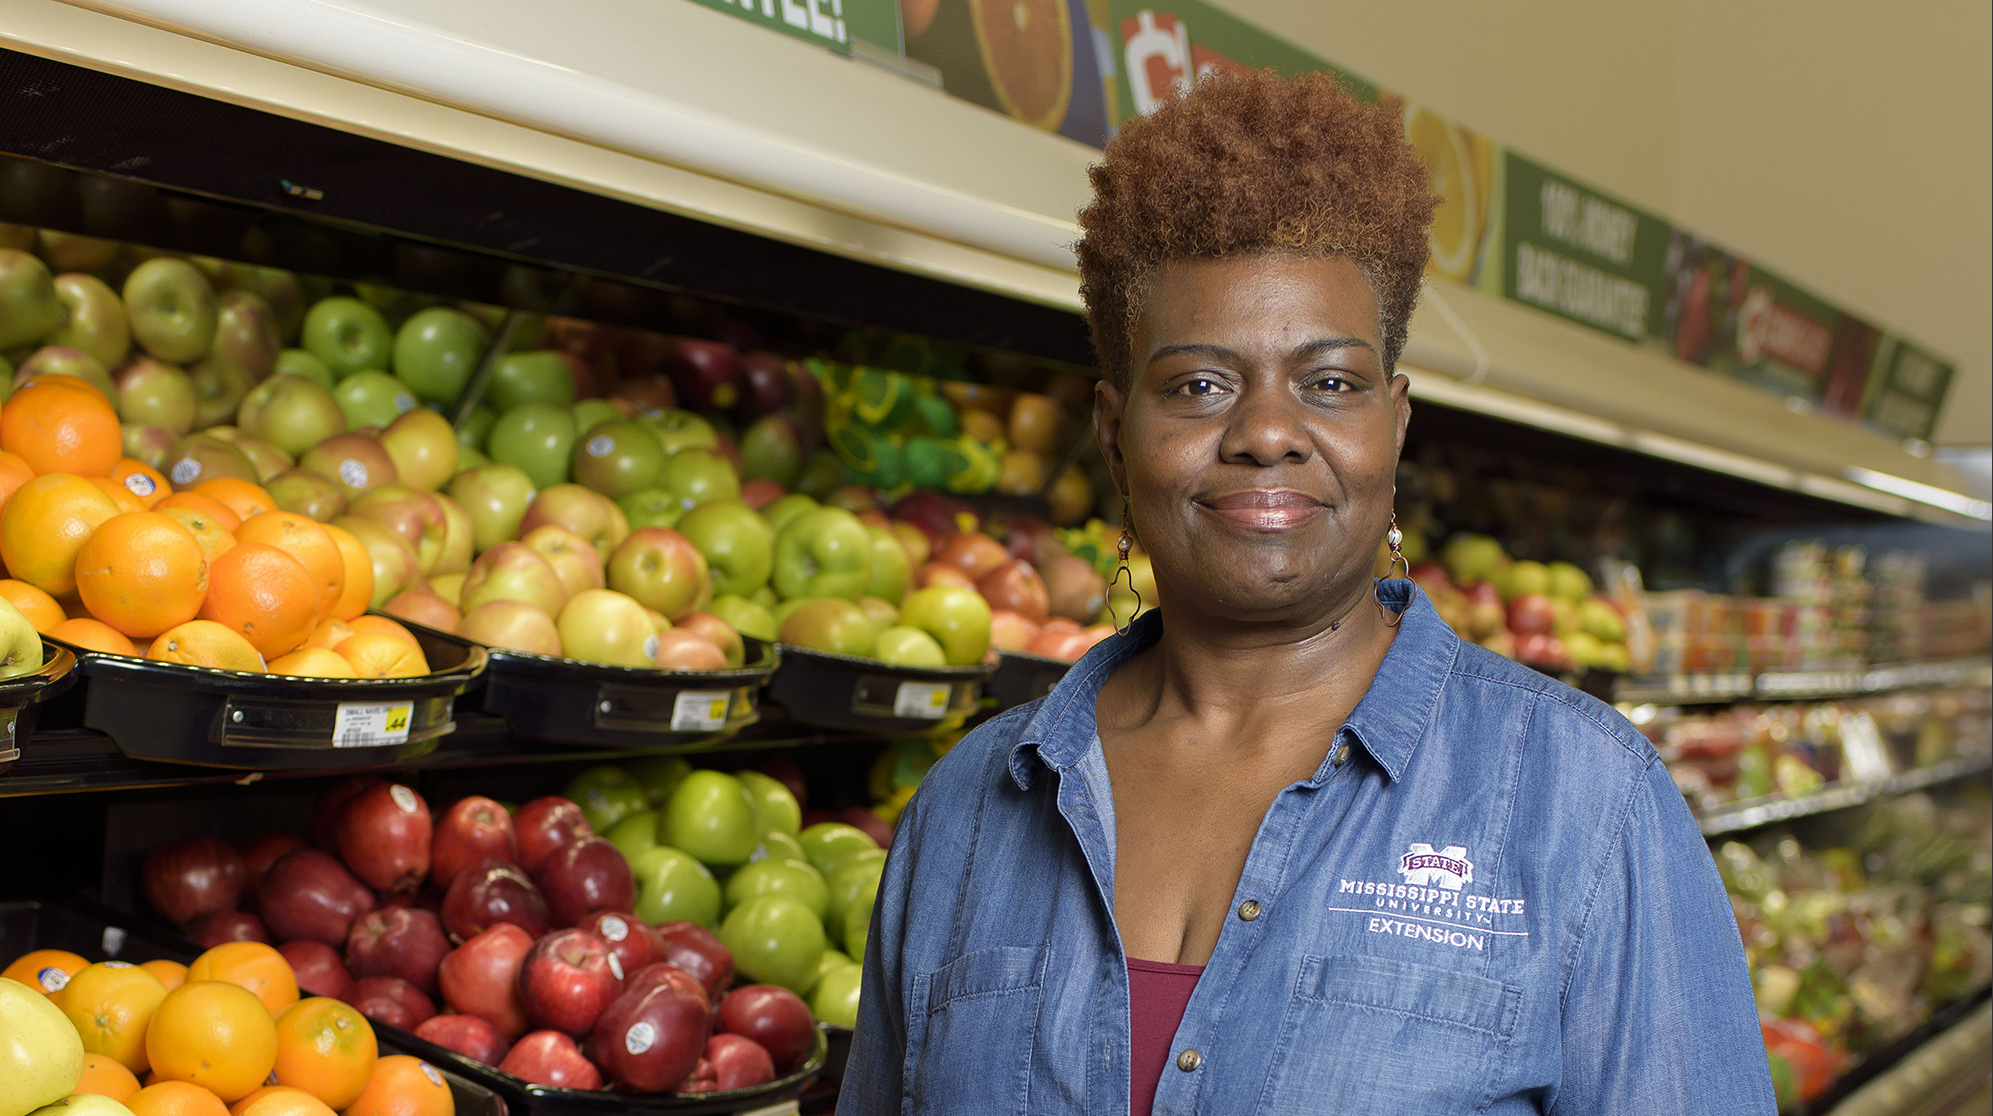 A woman stands in front of a grocery store fruit display.